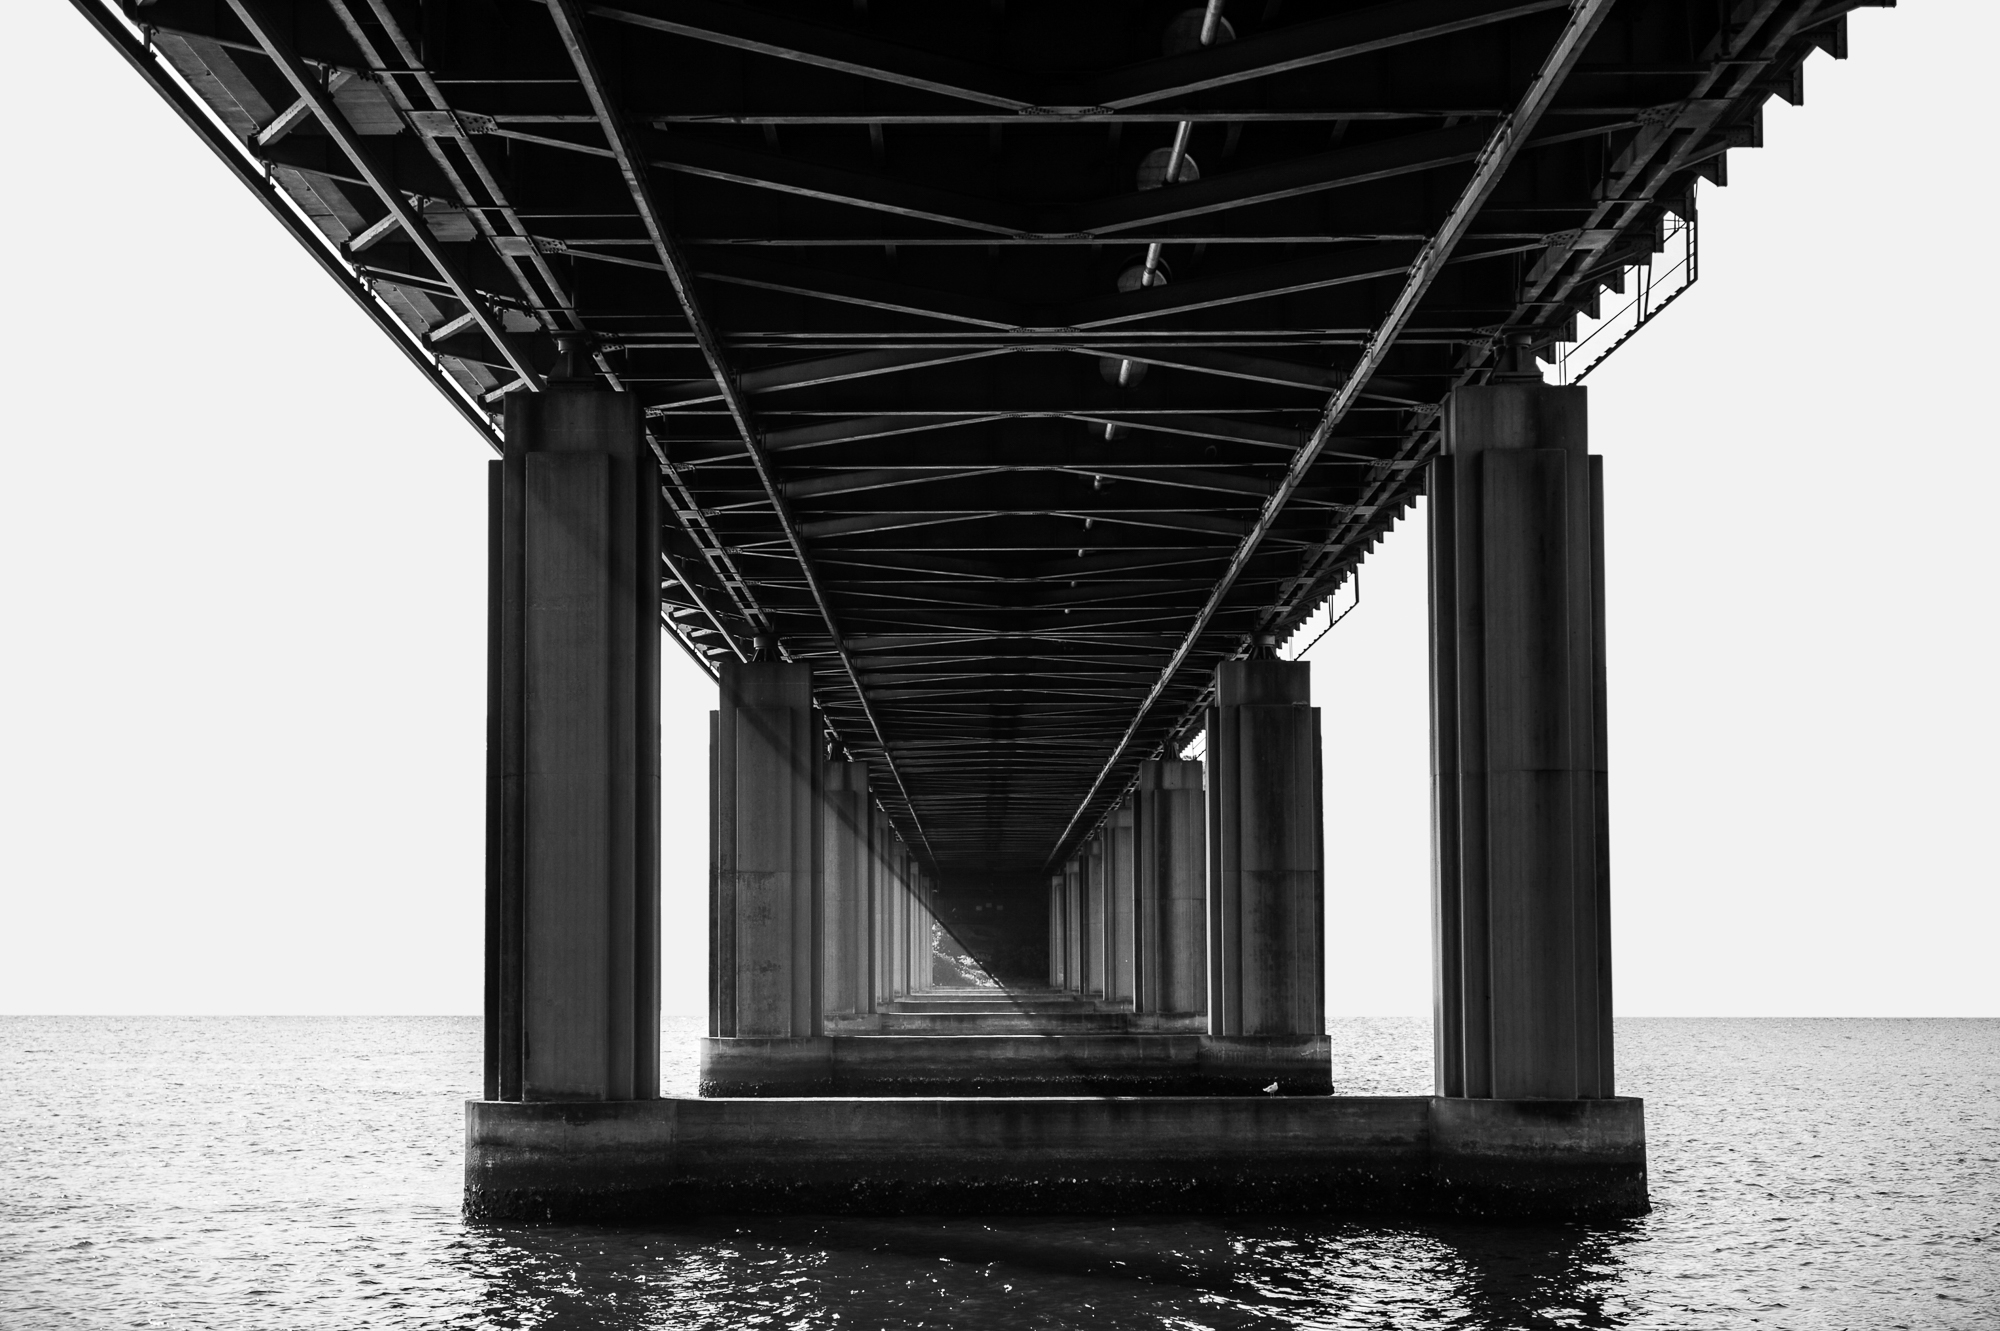 Urban photograph of underside of Iron cove bridge in Sydney Australia.